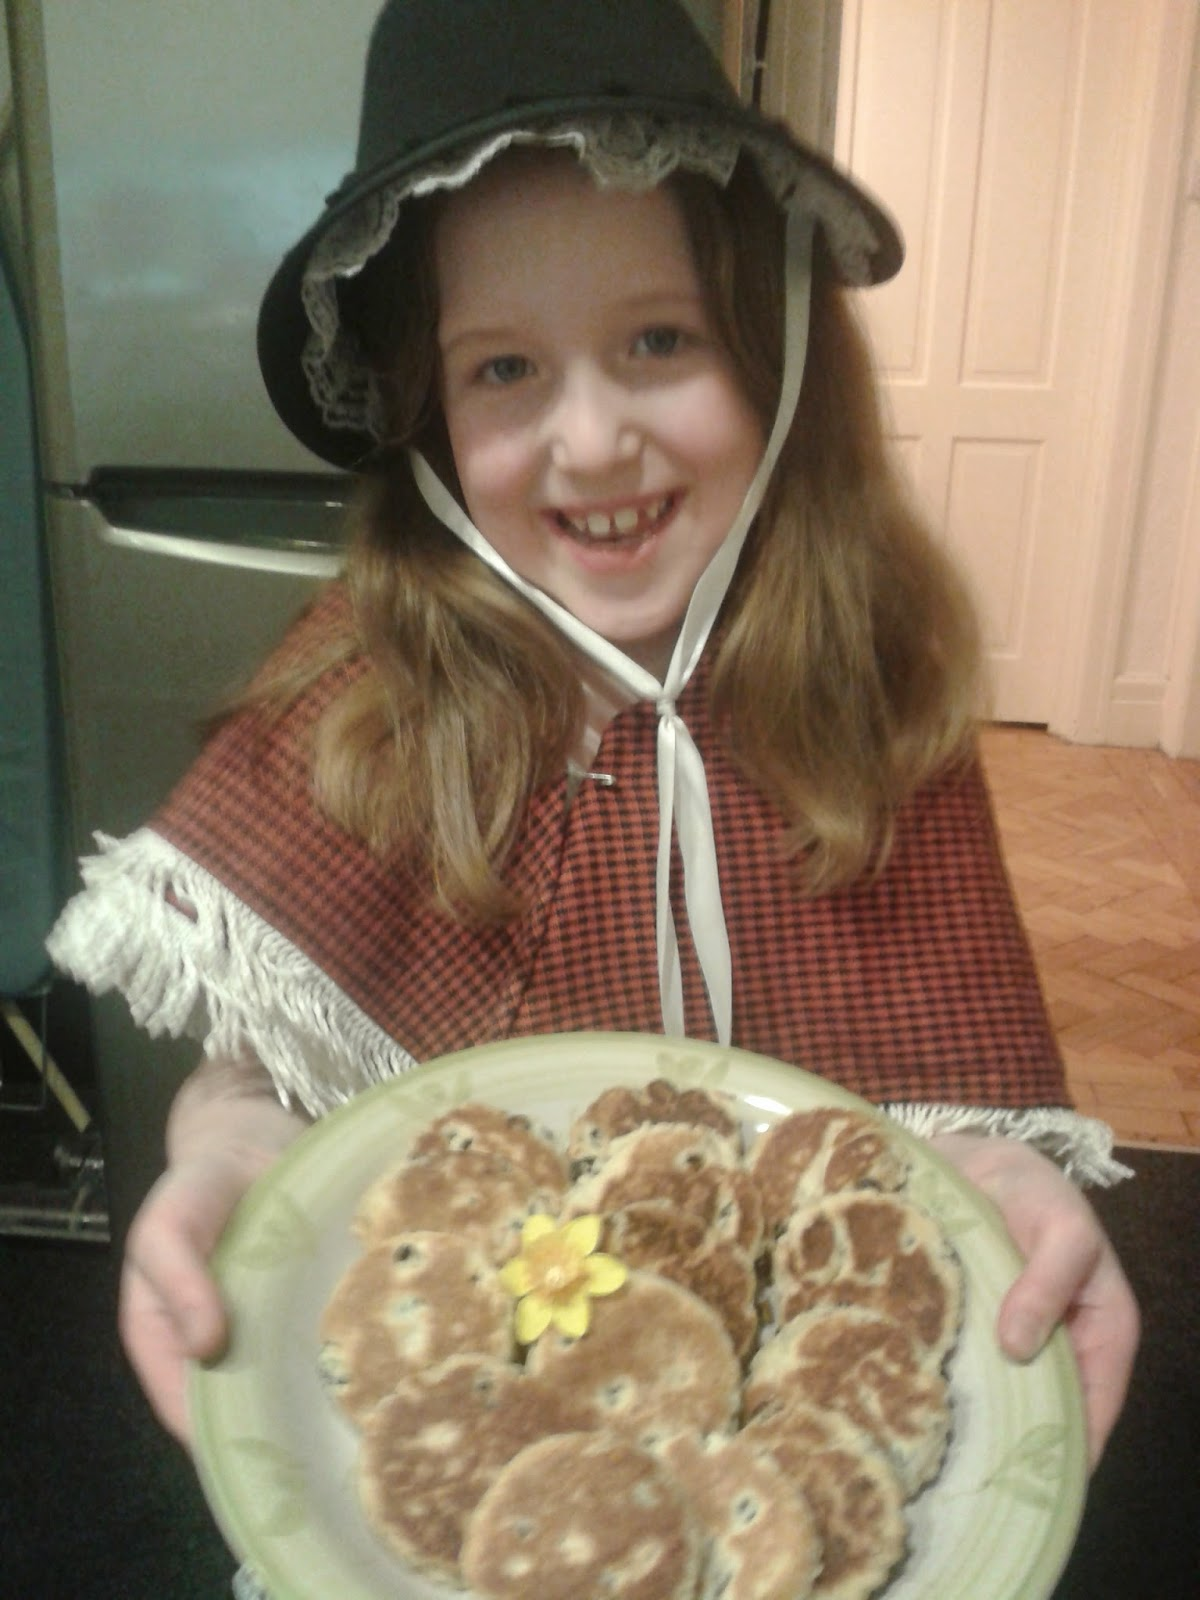 Welsh cakes recipe - Caitlin in Welsh Lady costume holding a plate of Welsh cakes